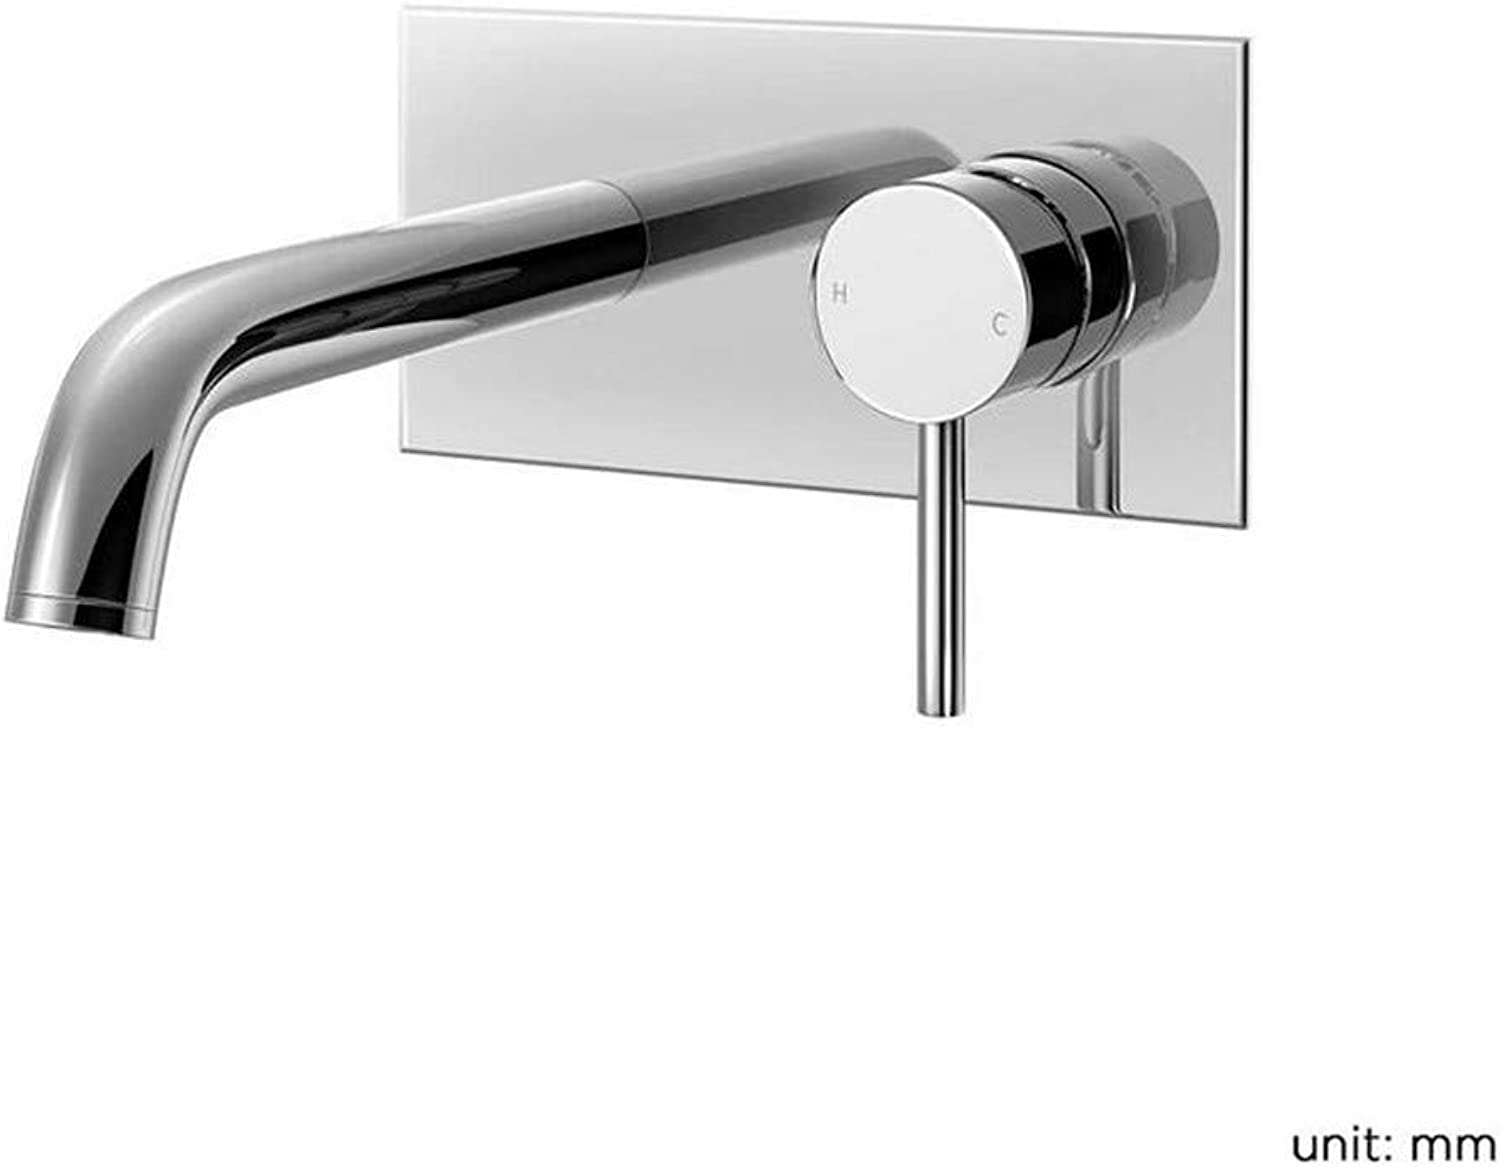 Retro Kitchen Hot and Cold Water 360 Degree redation Wall Mounted Bath Filler Mixer Tap Chrome Bathroom Faucet